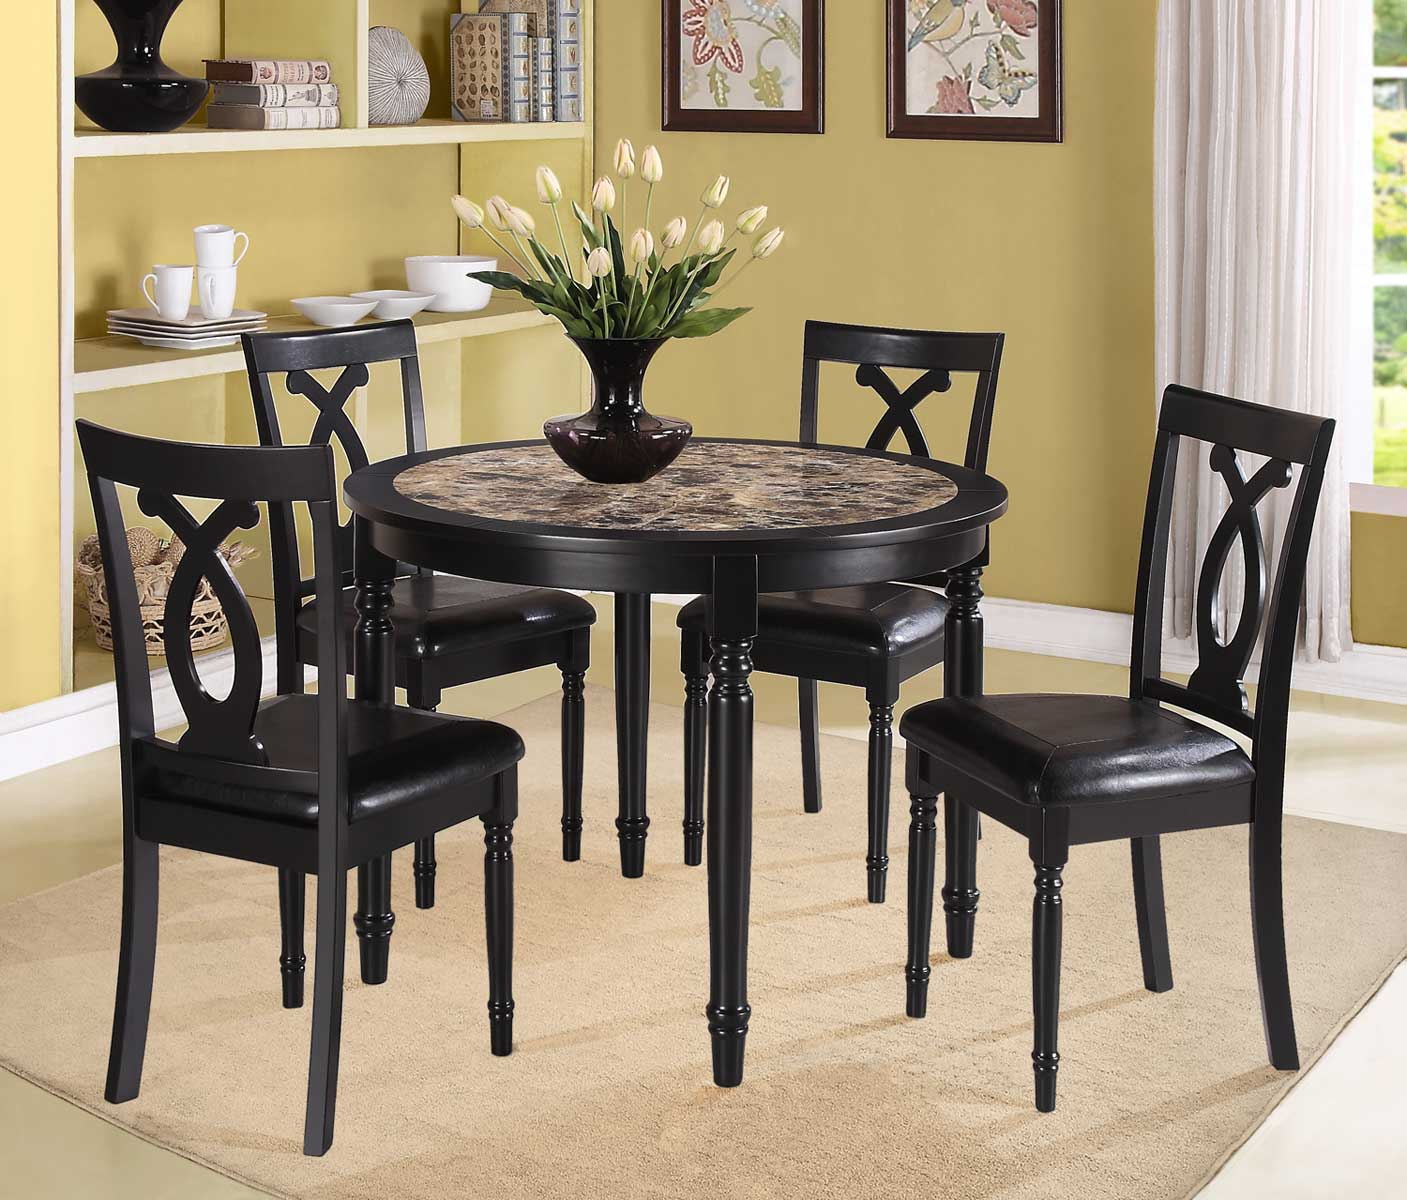 Homelegance Piper 5PC Round Dinette Set - Faux Marble